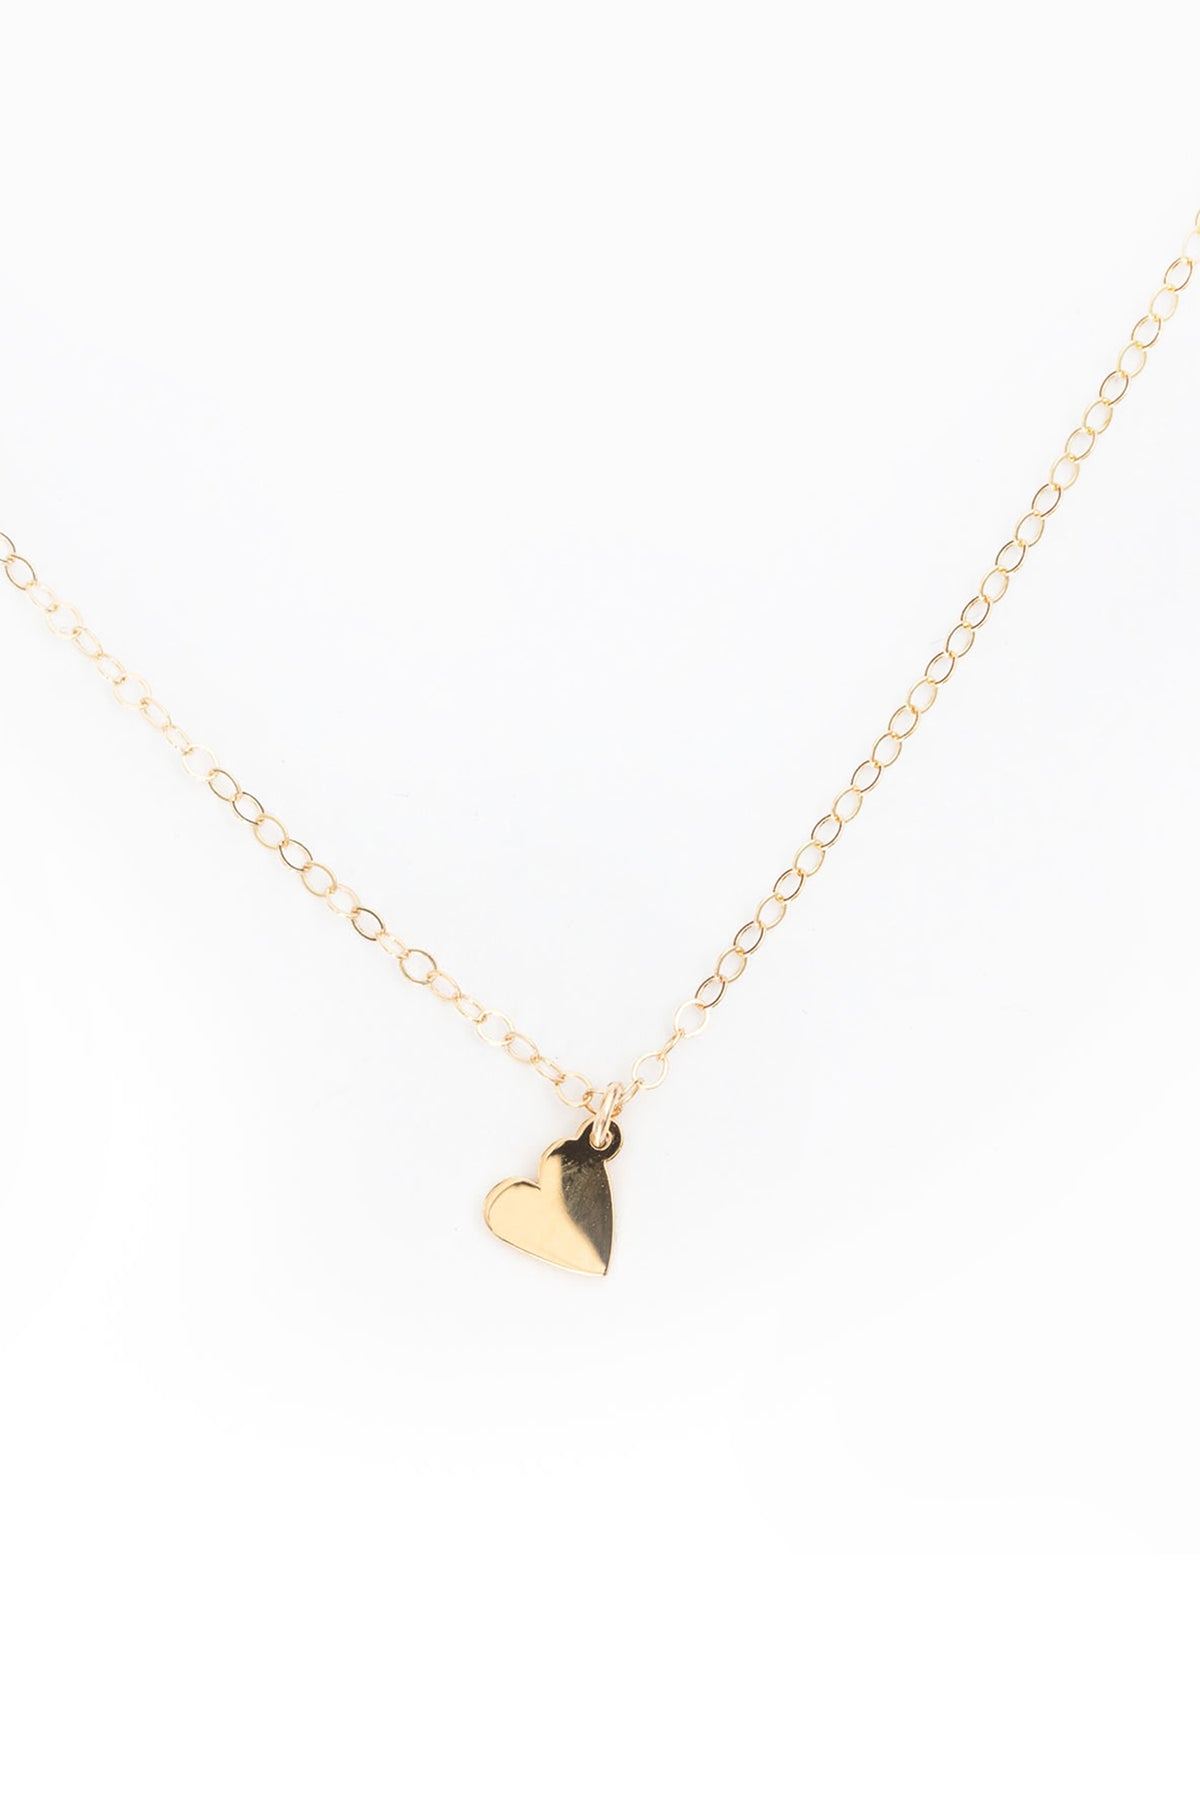 HEART NECKLACE by SEOUL LITTLE